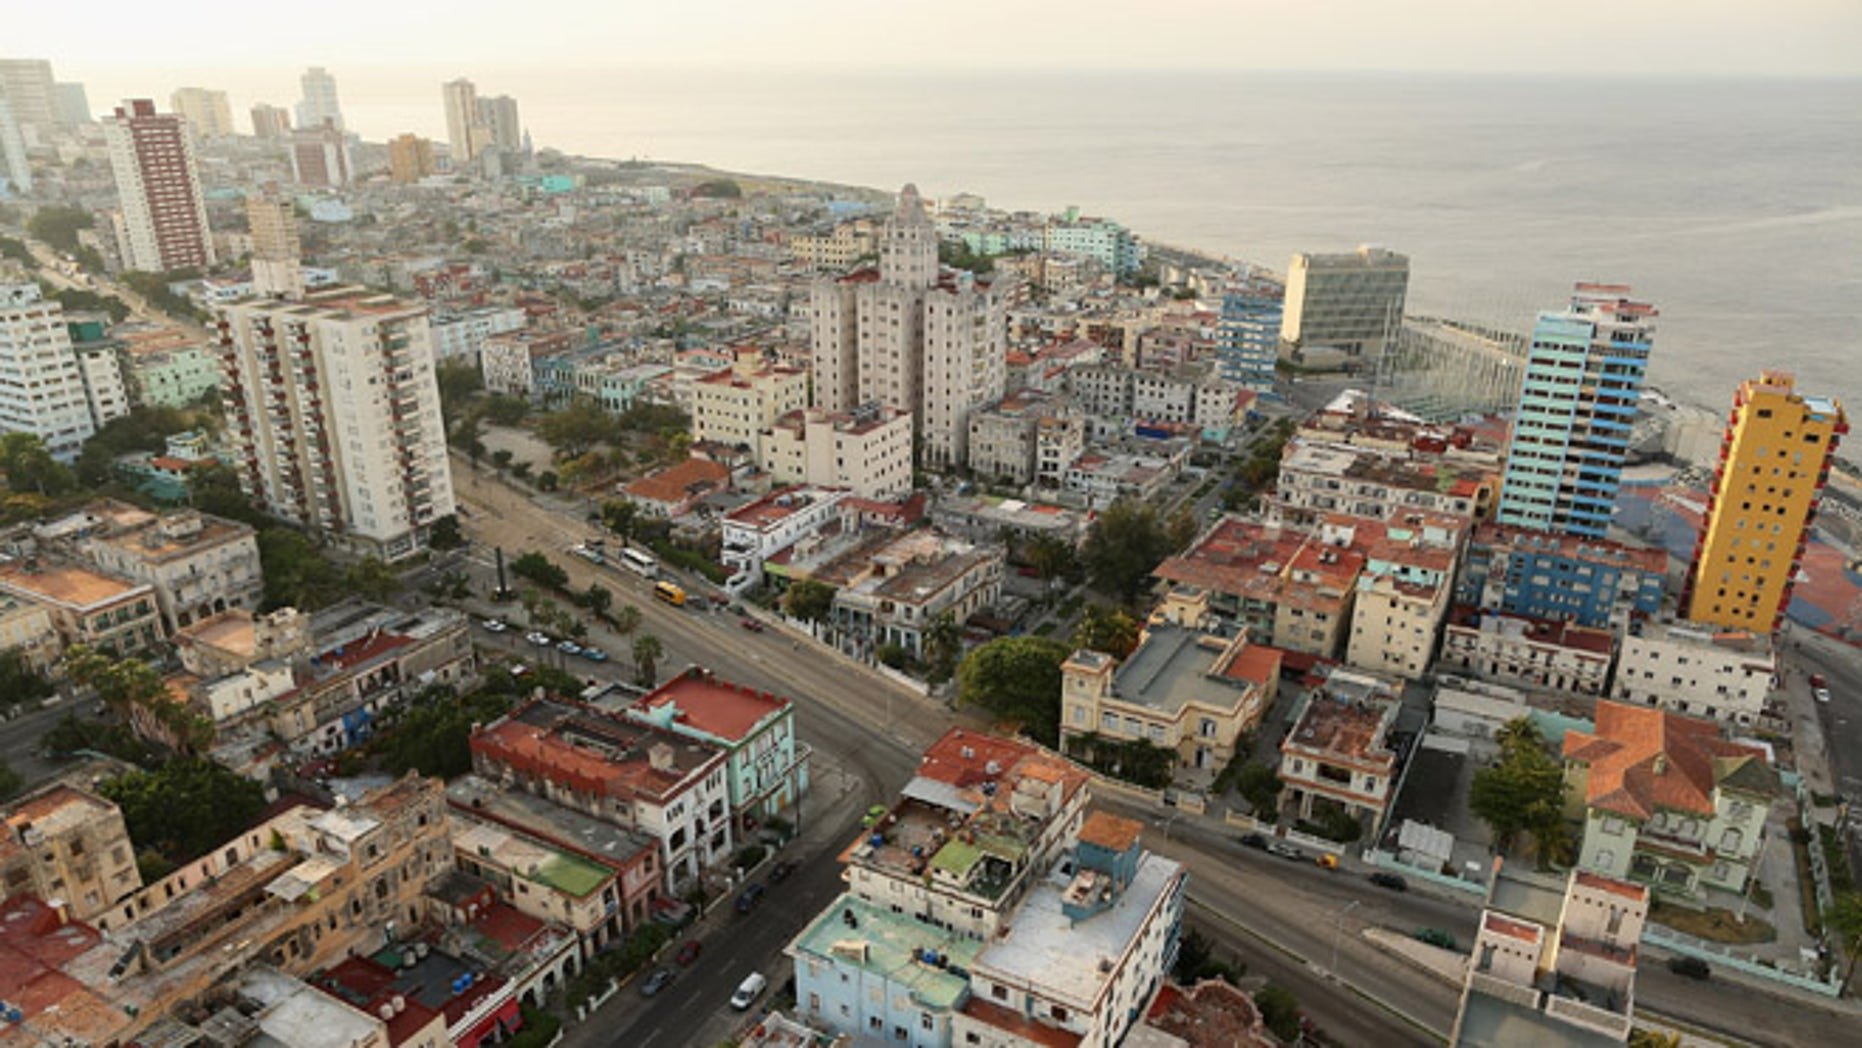 Tightly packed apartment buildings in varying states of repair and disrepair stand in the Vedado neighborhood near the historic Malecón oceanfront drive January 23, 2015 in Havana, Cuba. (Photo by Chip Somodevilla/Getty Images)